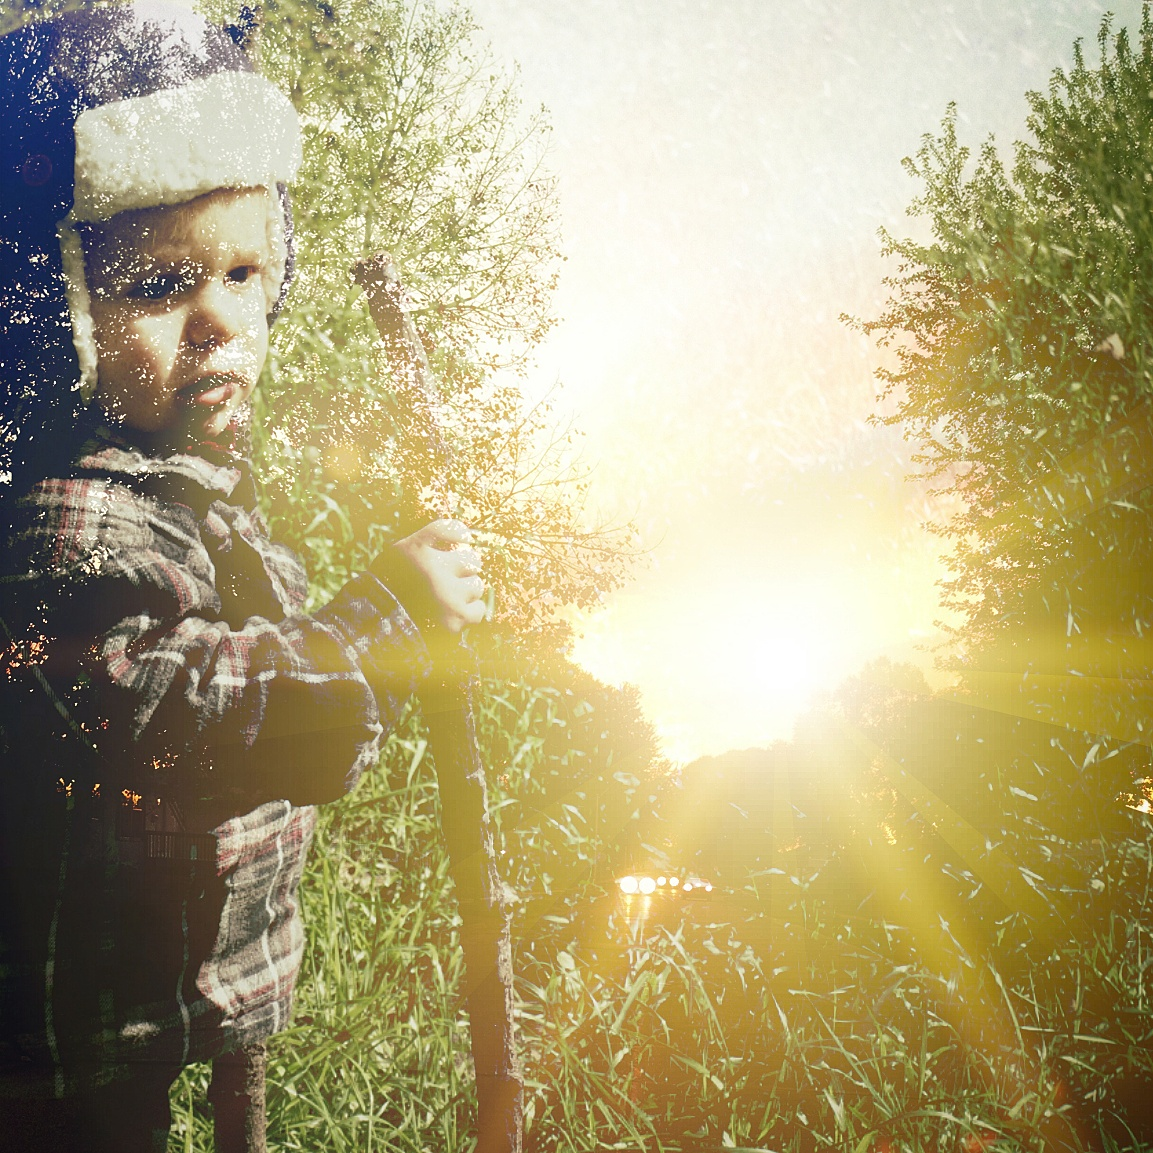 A double exposure edit of Ryker the Hiker with some trees, as seen in the next photo.